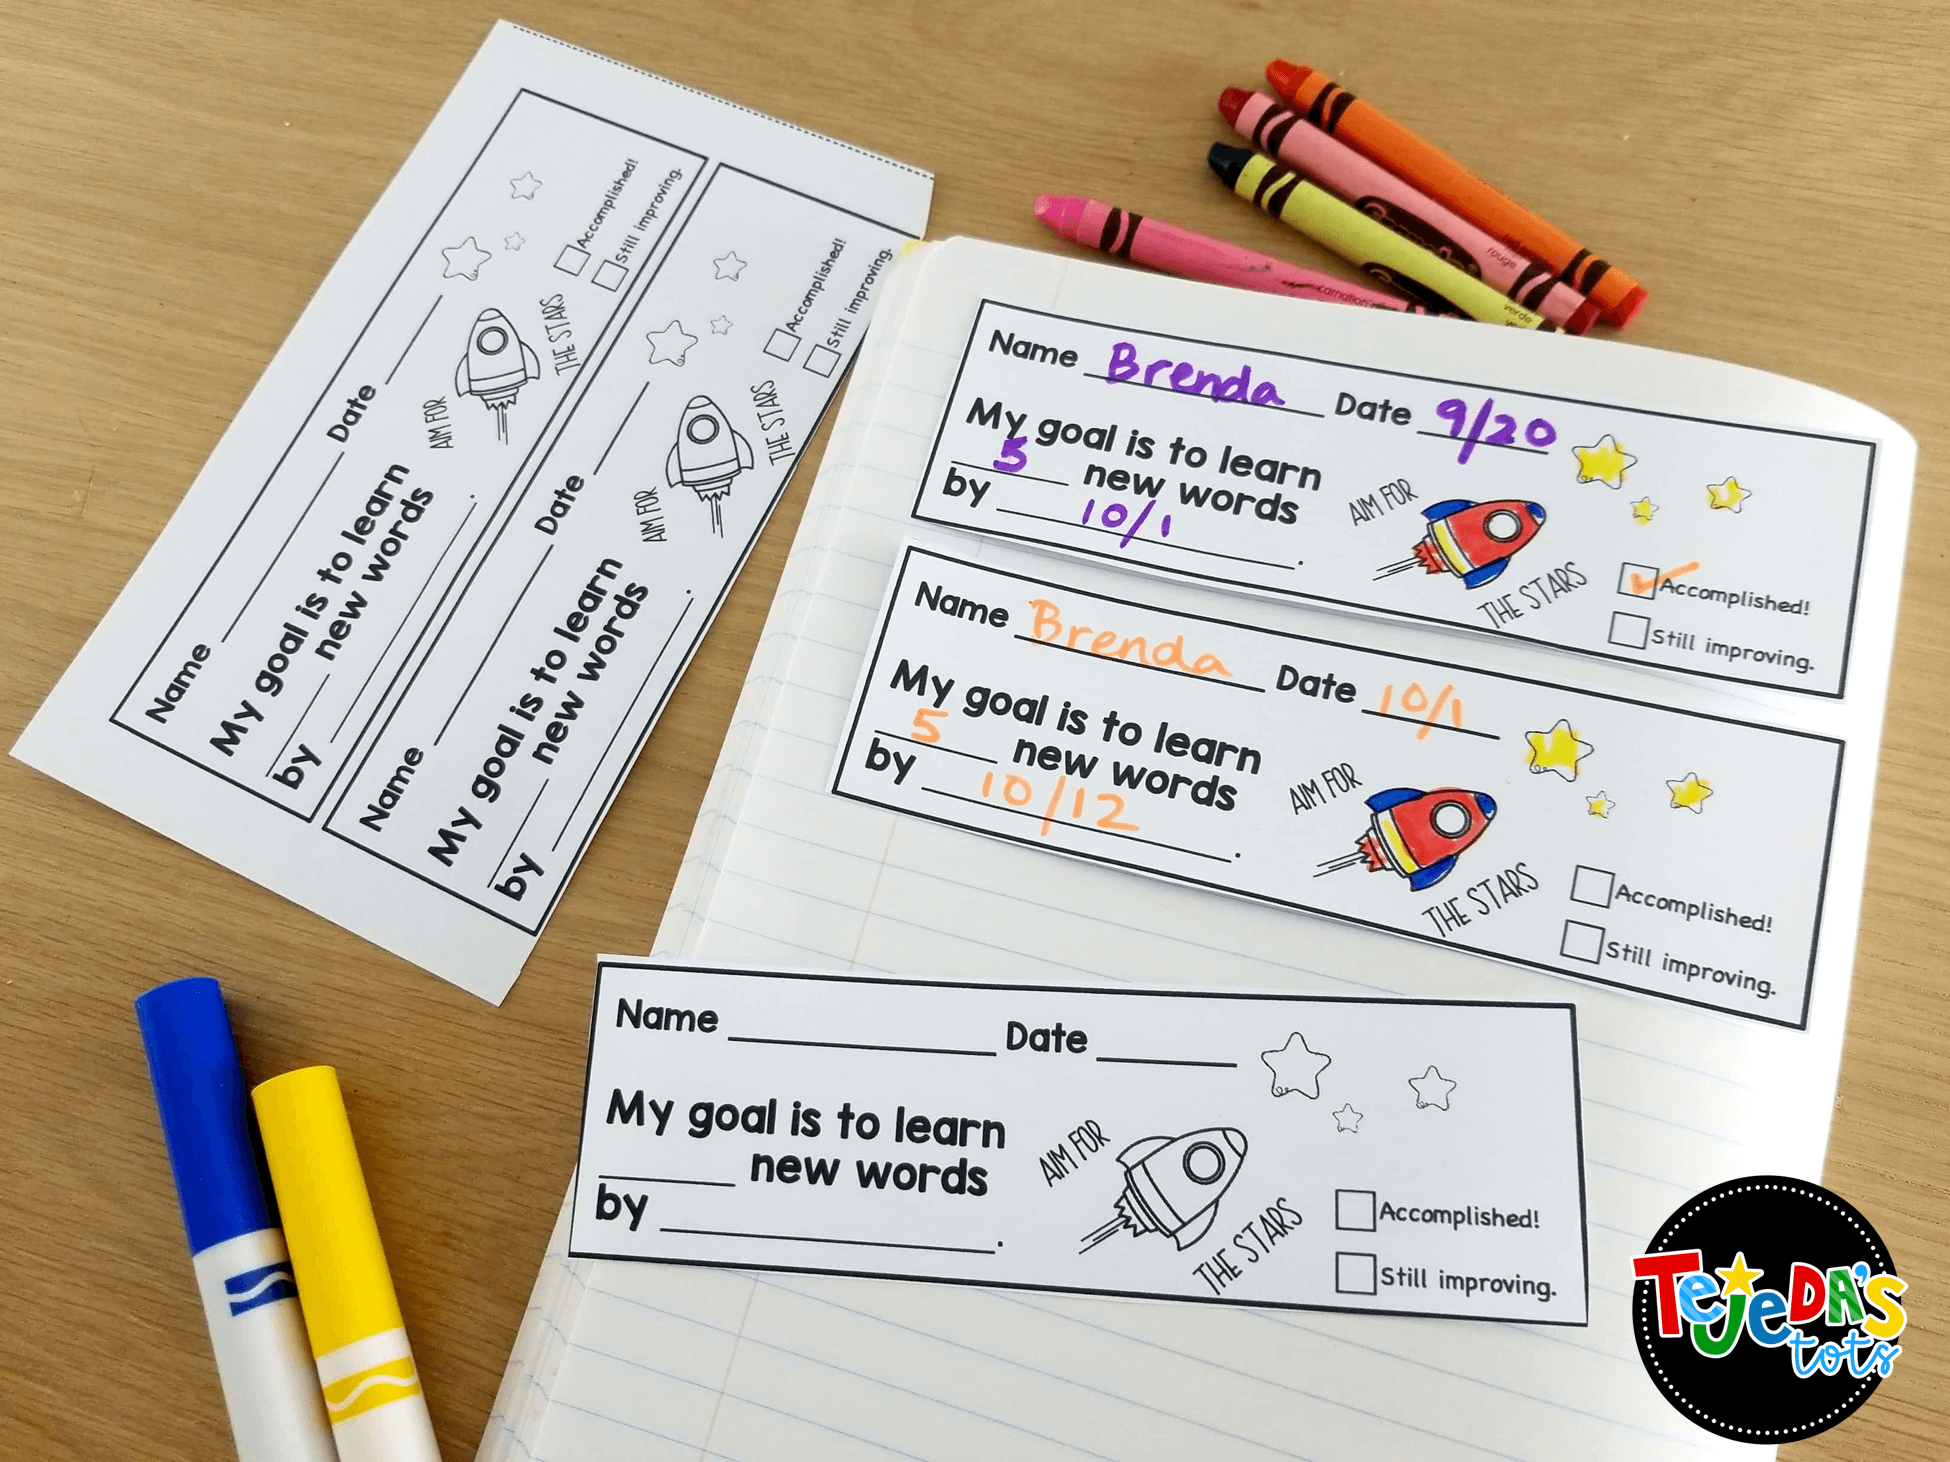 Allowing students to set their own goals is powerful! This blog post shares benefits, tips and ideas for bossting student success with goal-setting! These sight word slips help students set and meet goals for learning sight words. #tejedastots #sightwords #studentgoalsetting